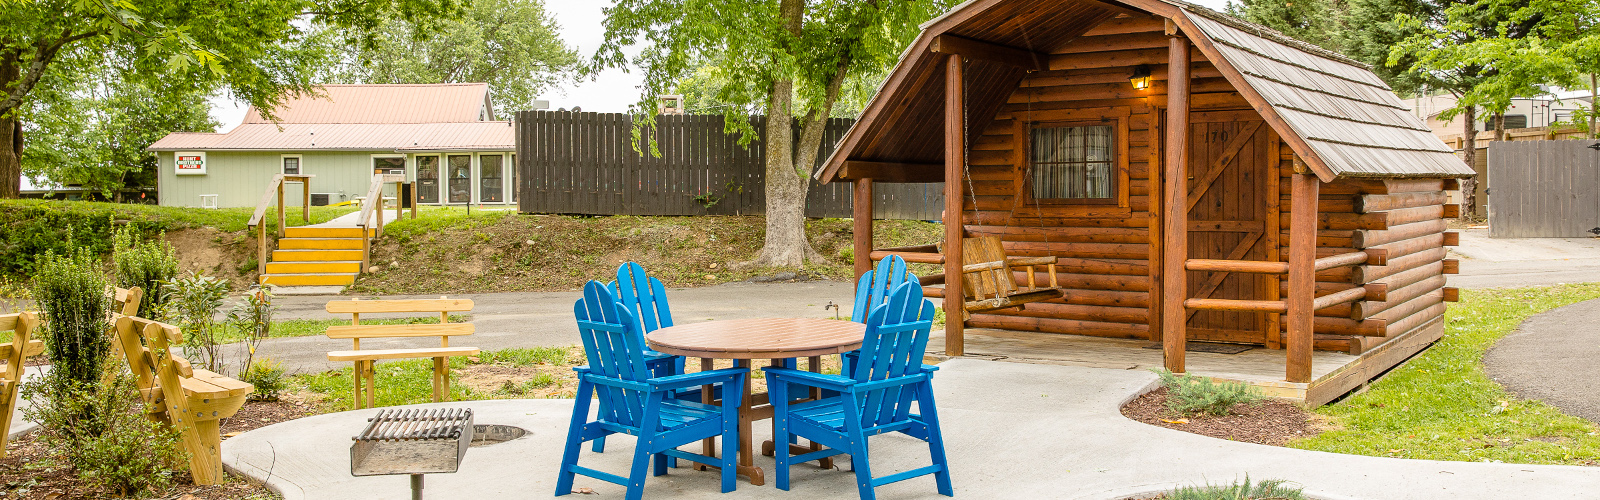 Cabin camping camping cabin rentals koa campgrounds for Camping cabins plans